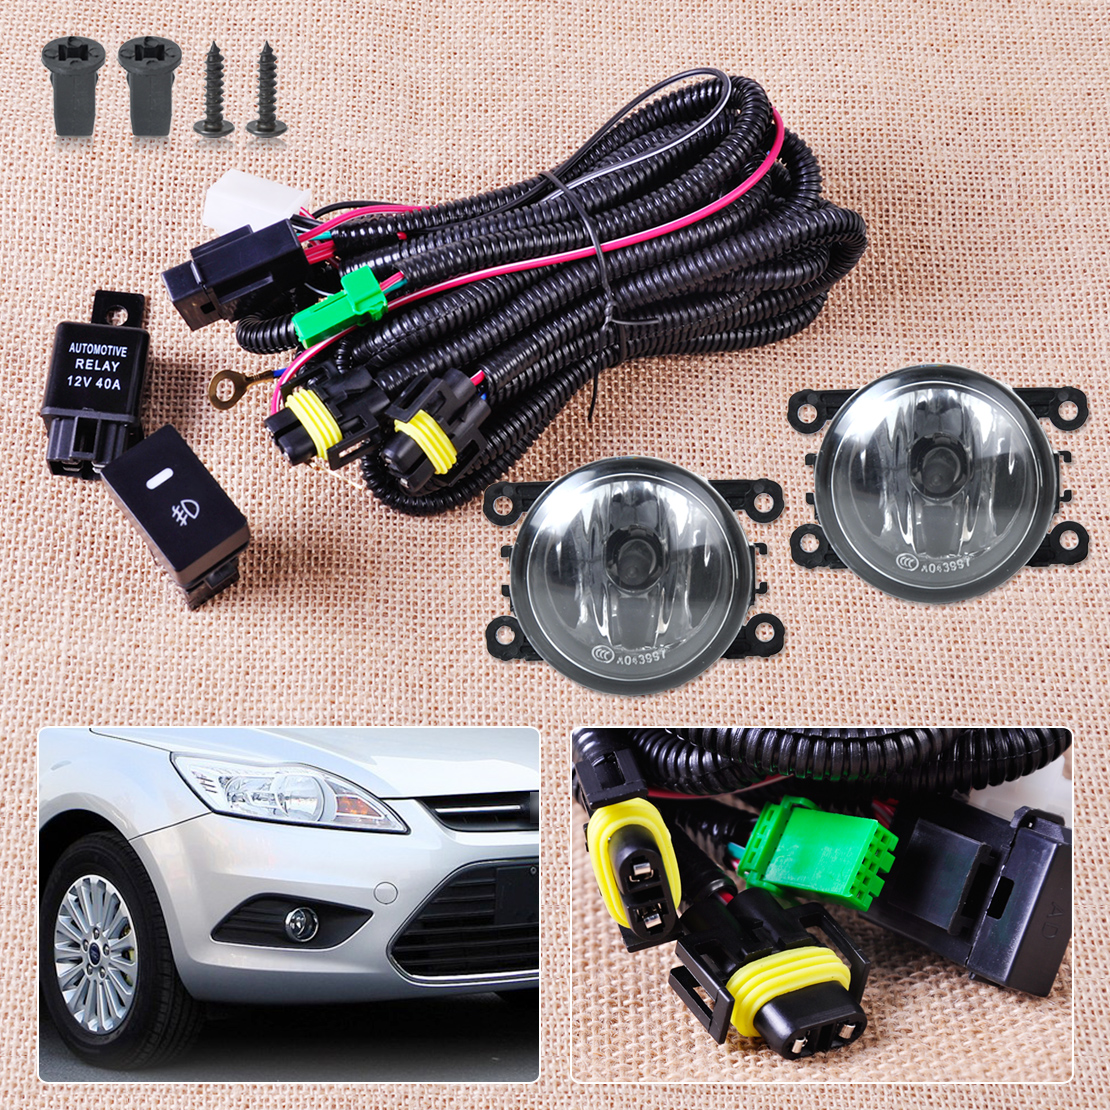 Wiring Harness Sockets + Switch + 2 H11 Fog Lights Lamp 4F9Z-15200-AA for Ford Focus Mustang Honda CR-V Acura TSX Nissan Sentra(China (Mainland))